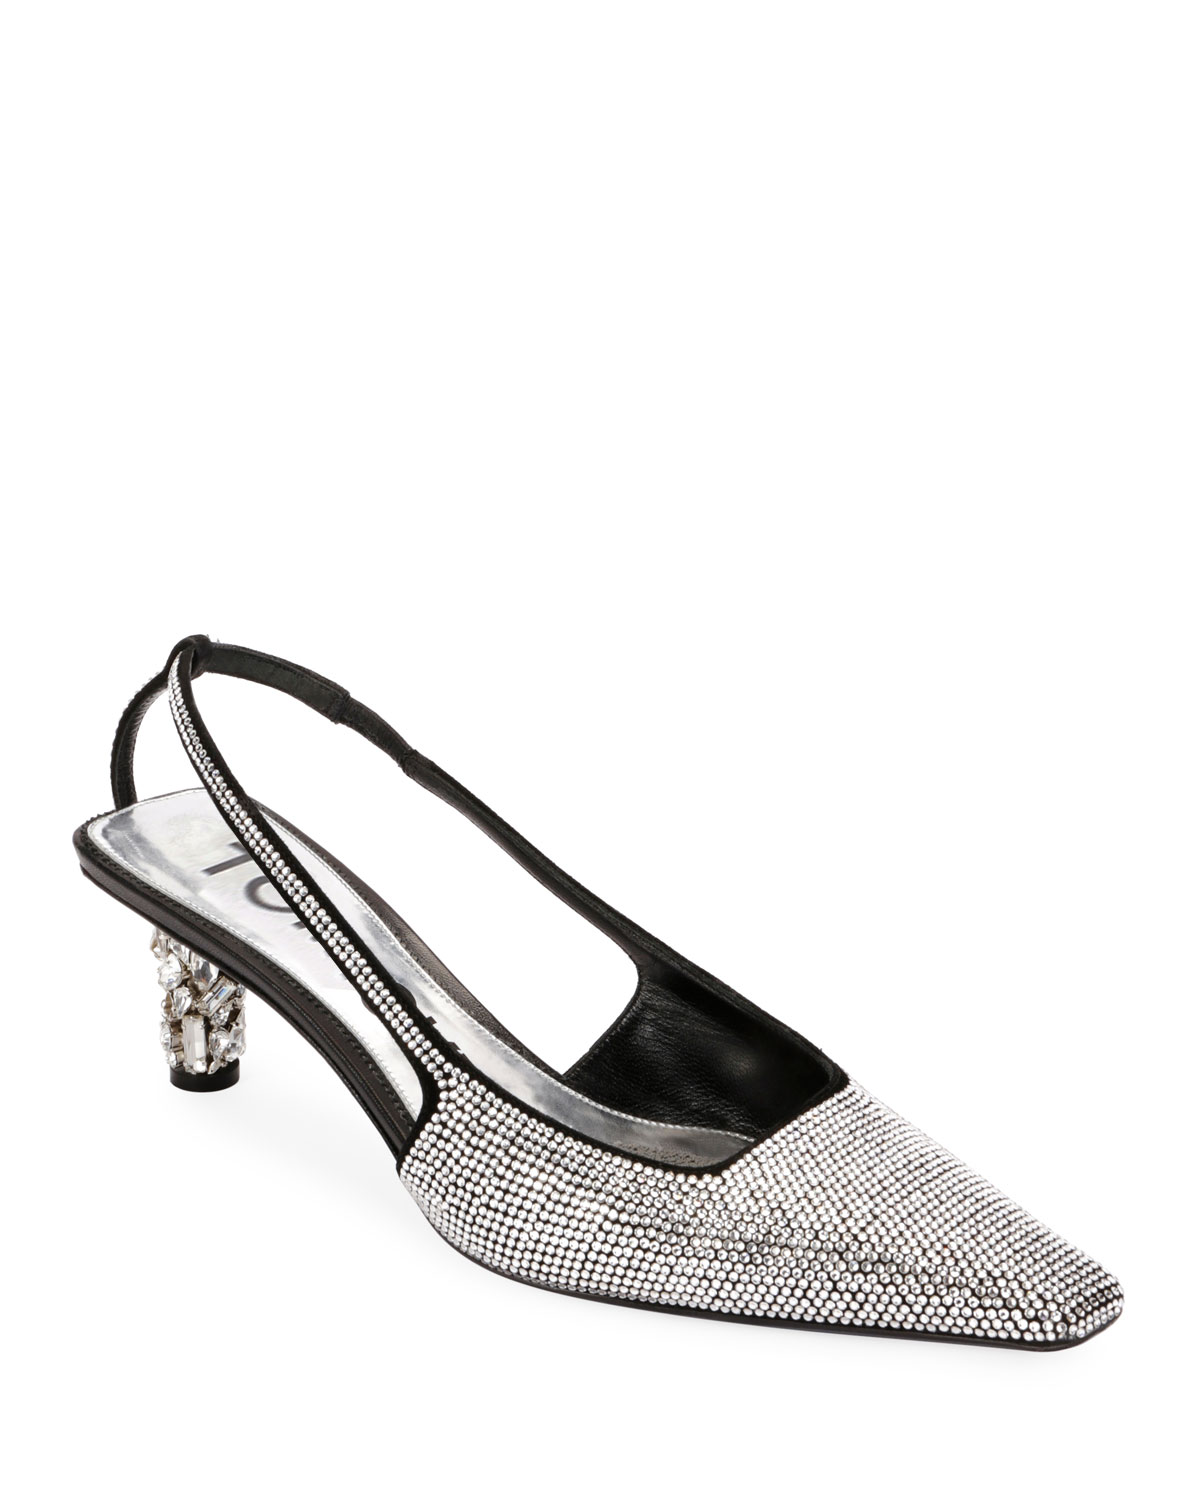 b377025a9ad7 TOM FORD Crystal-Beaded Slingback Pumps